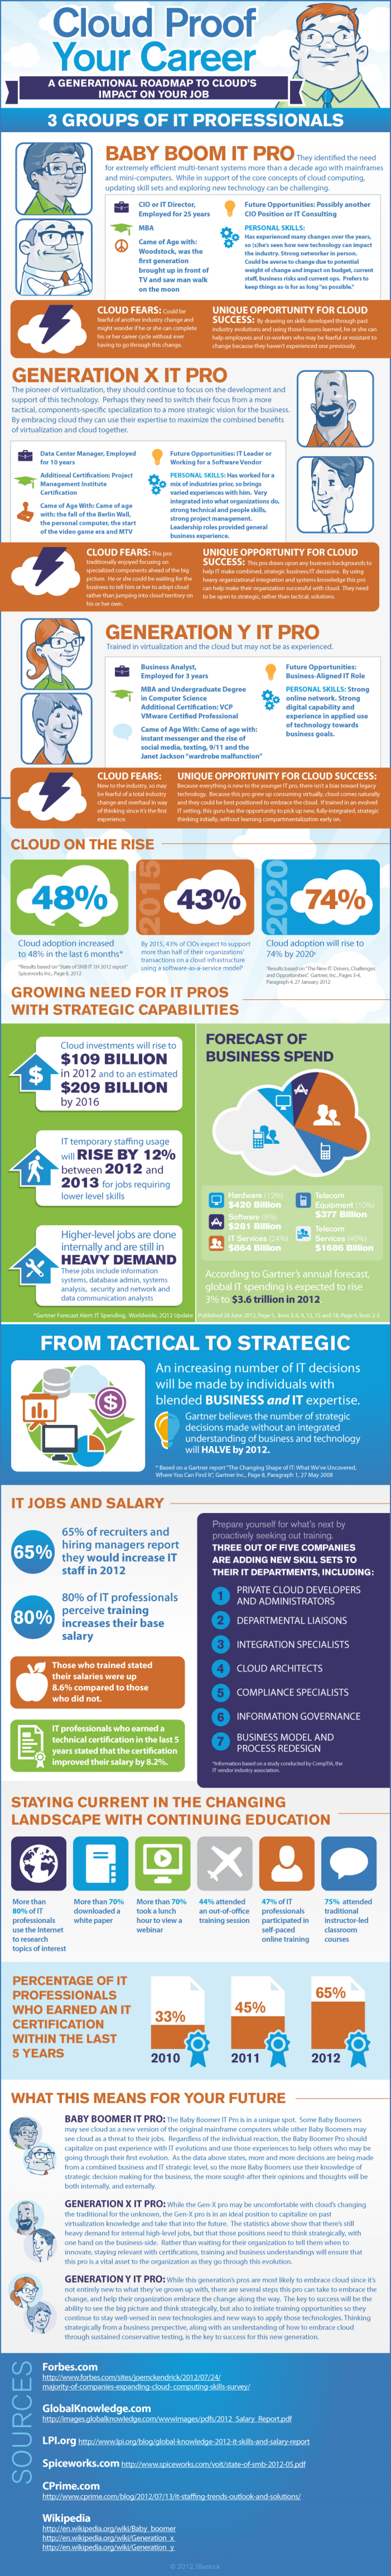 IT Guy: Adapting to the Cloud Infographic